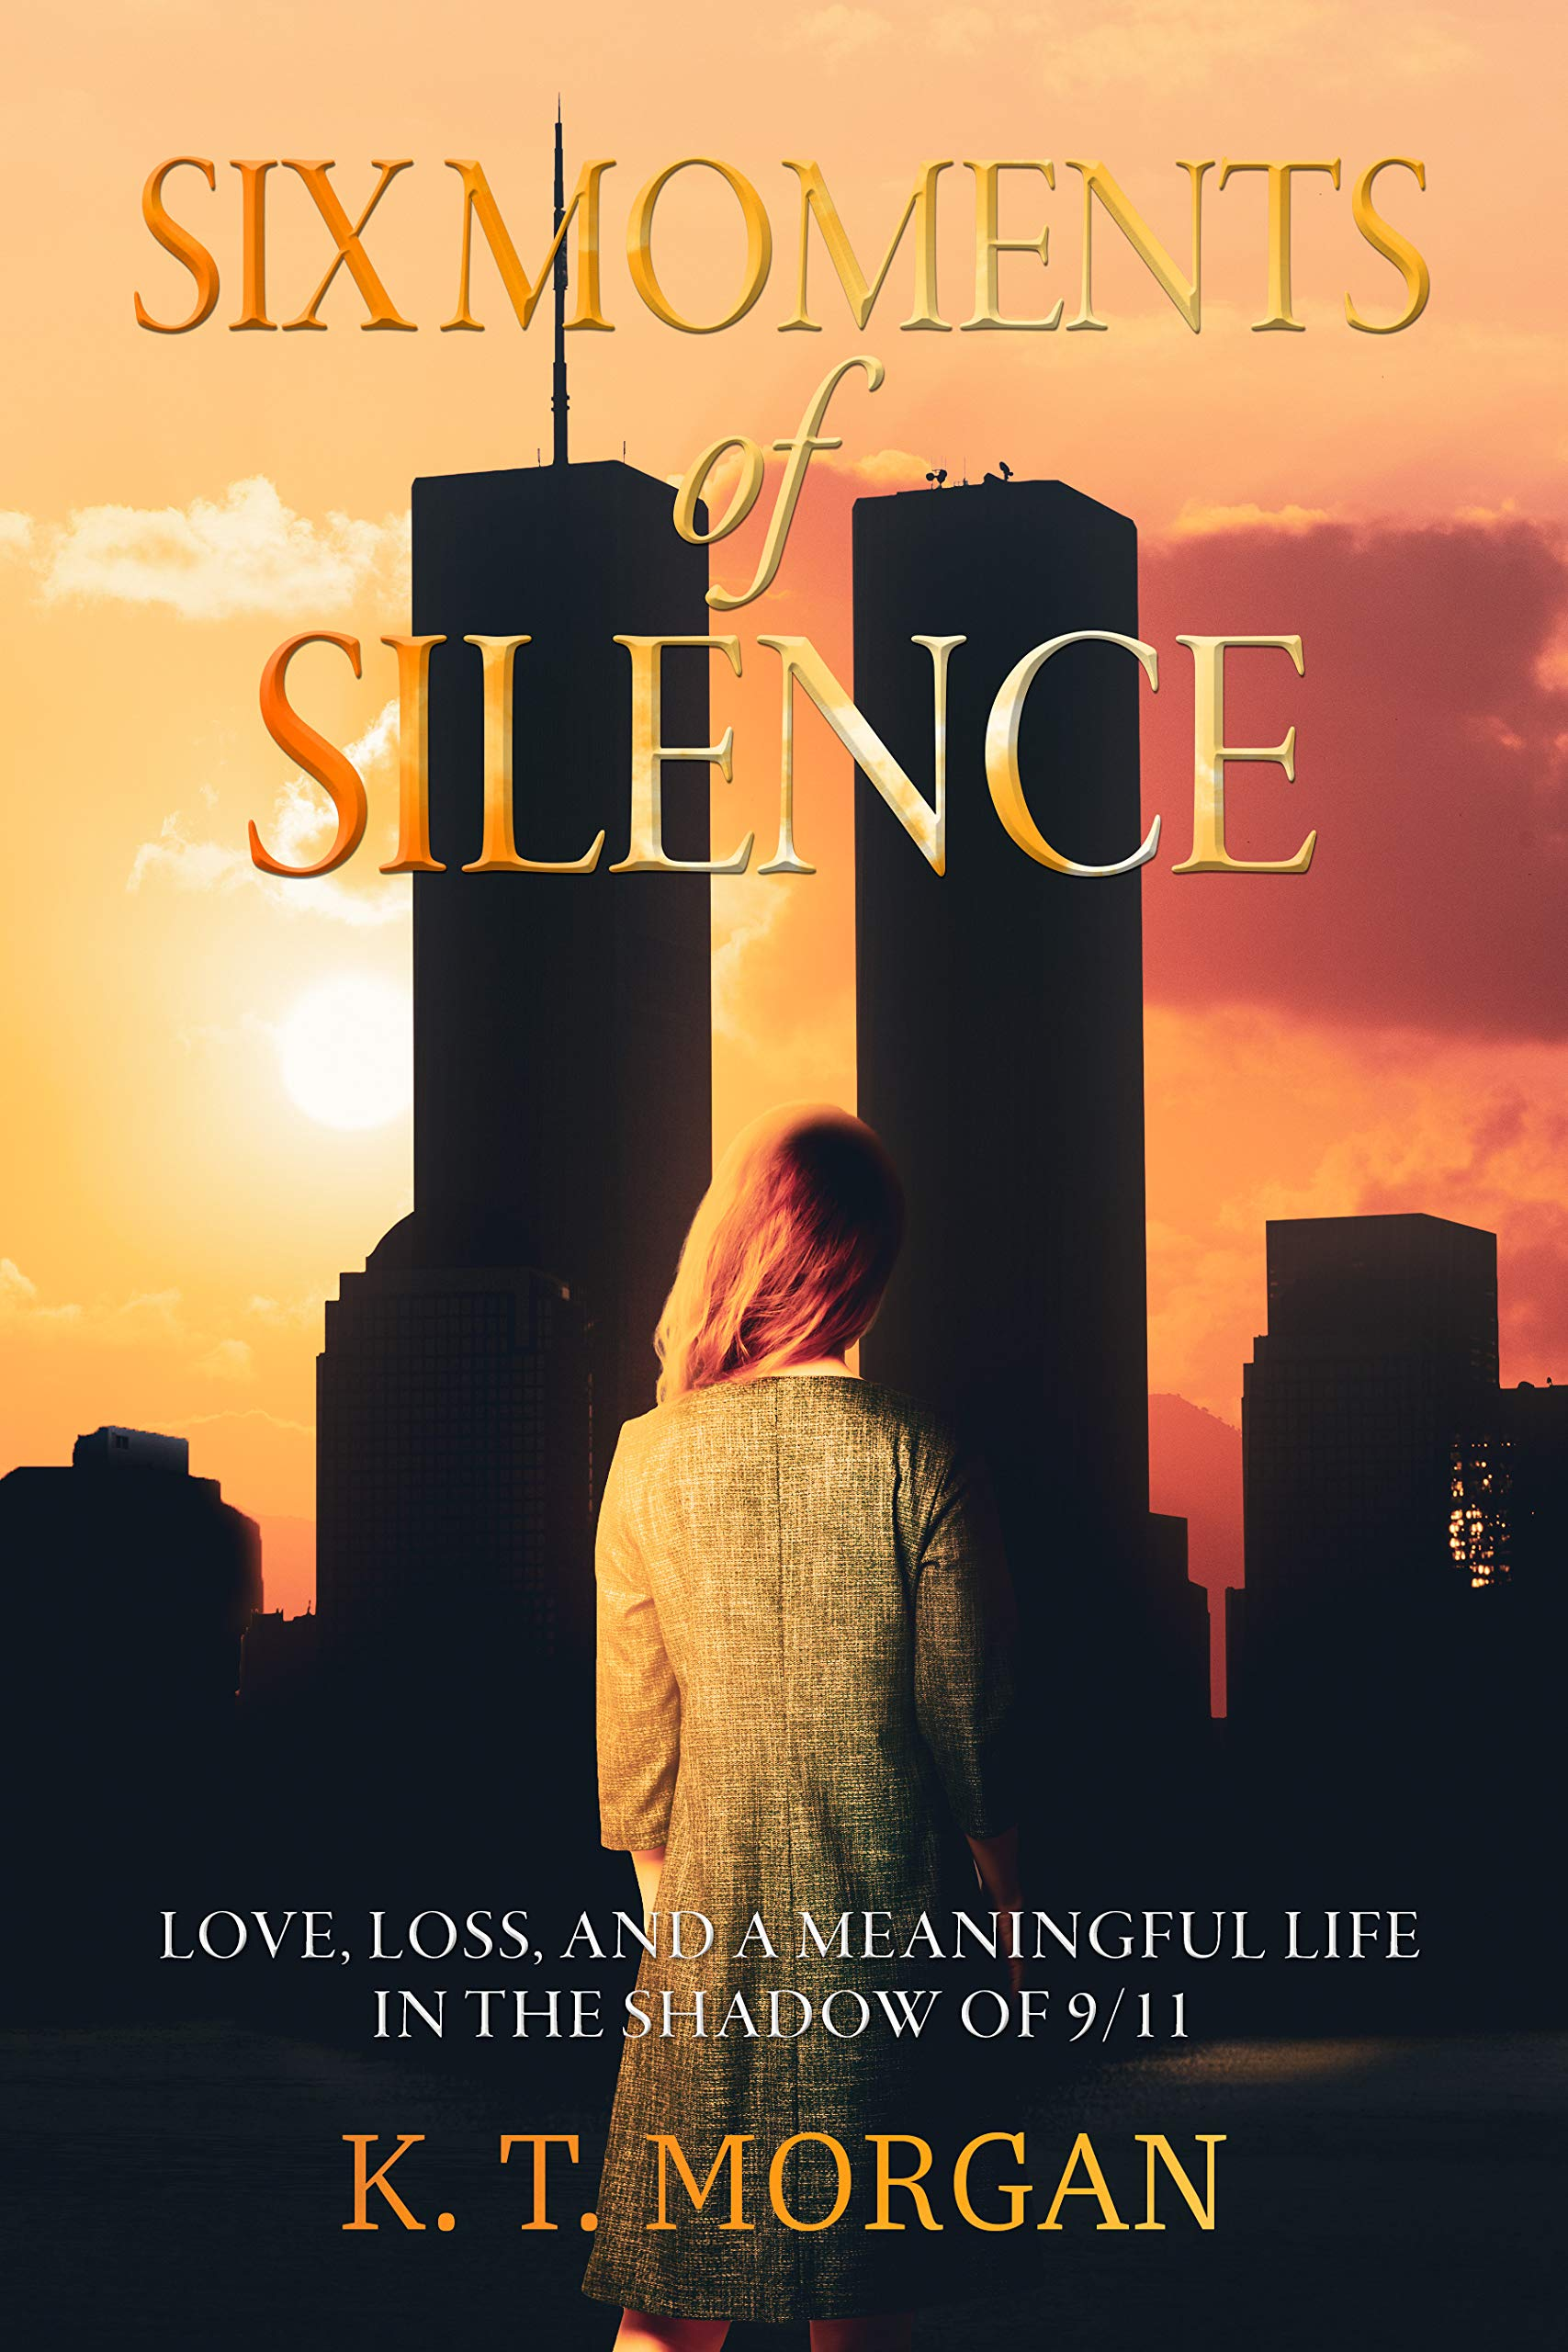 Six Moments of Silence: Love Loss and Meaningful Life in the Shadow of 9/11